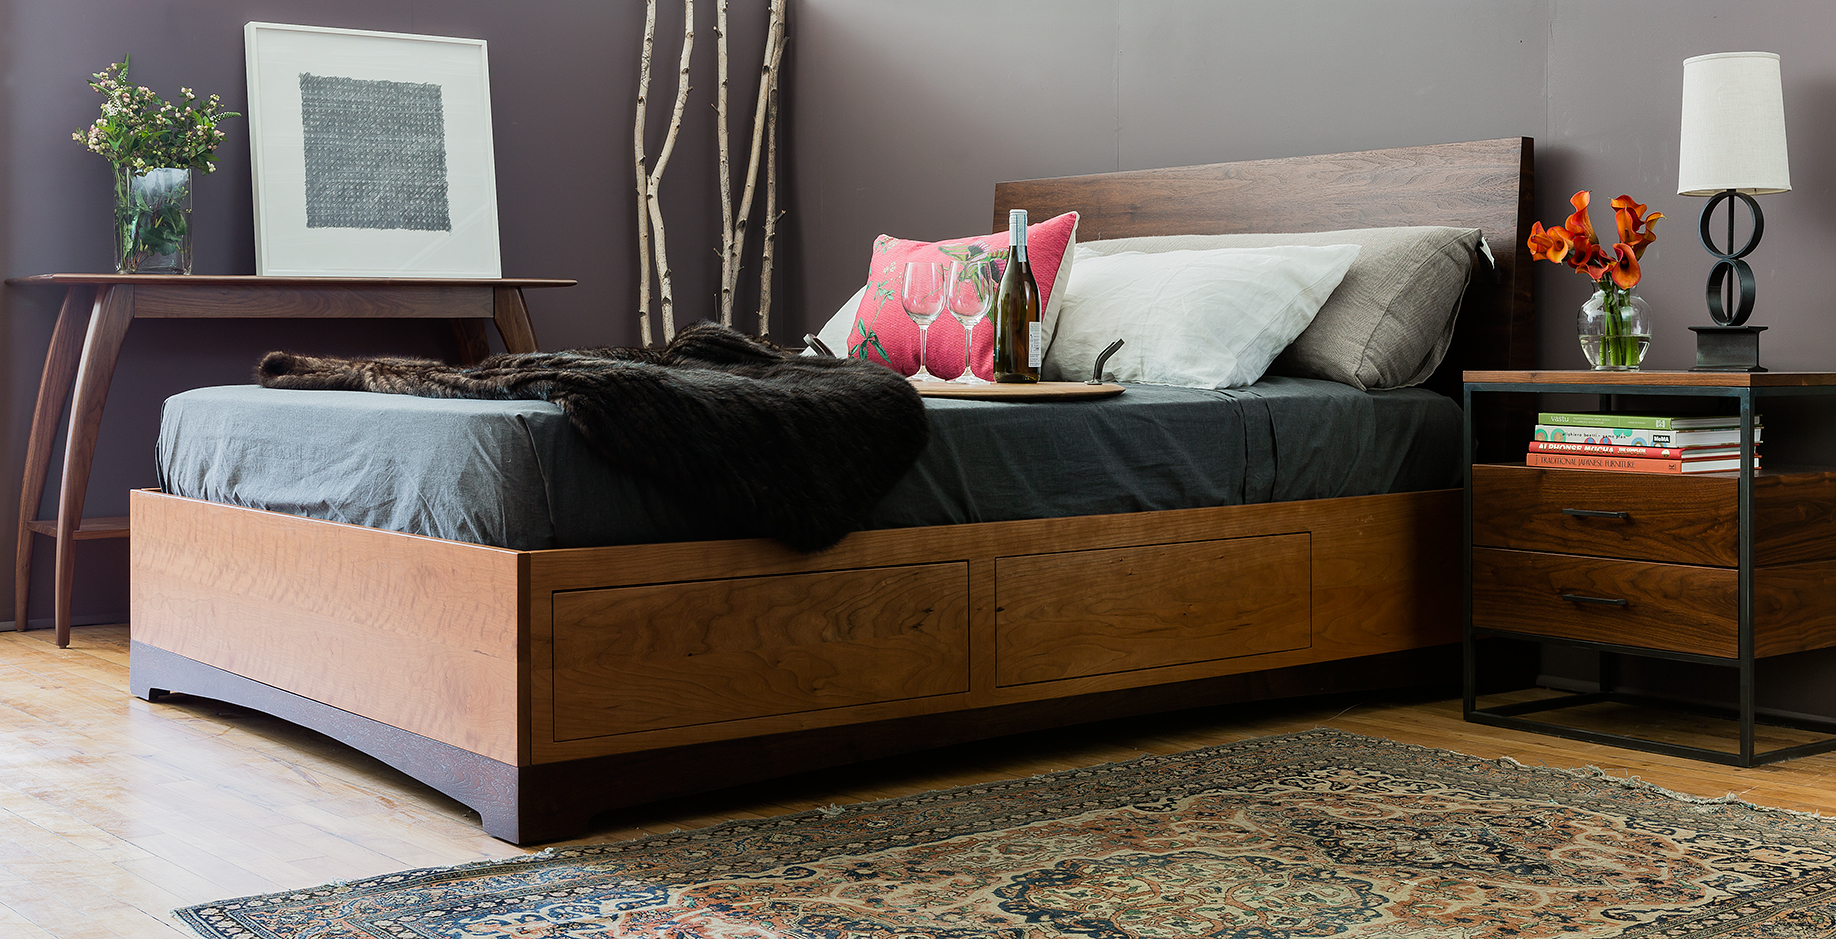 Eastern Console shown in walnut, the Modern Storage Bed in cherry and walnut, queen size & custom steel nightstand.